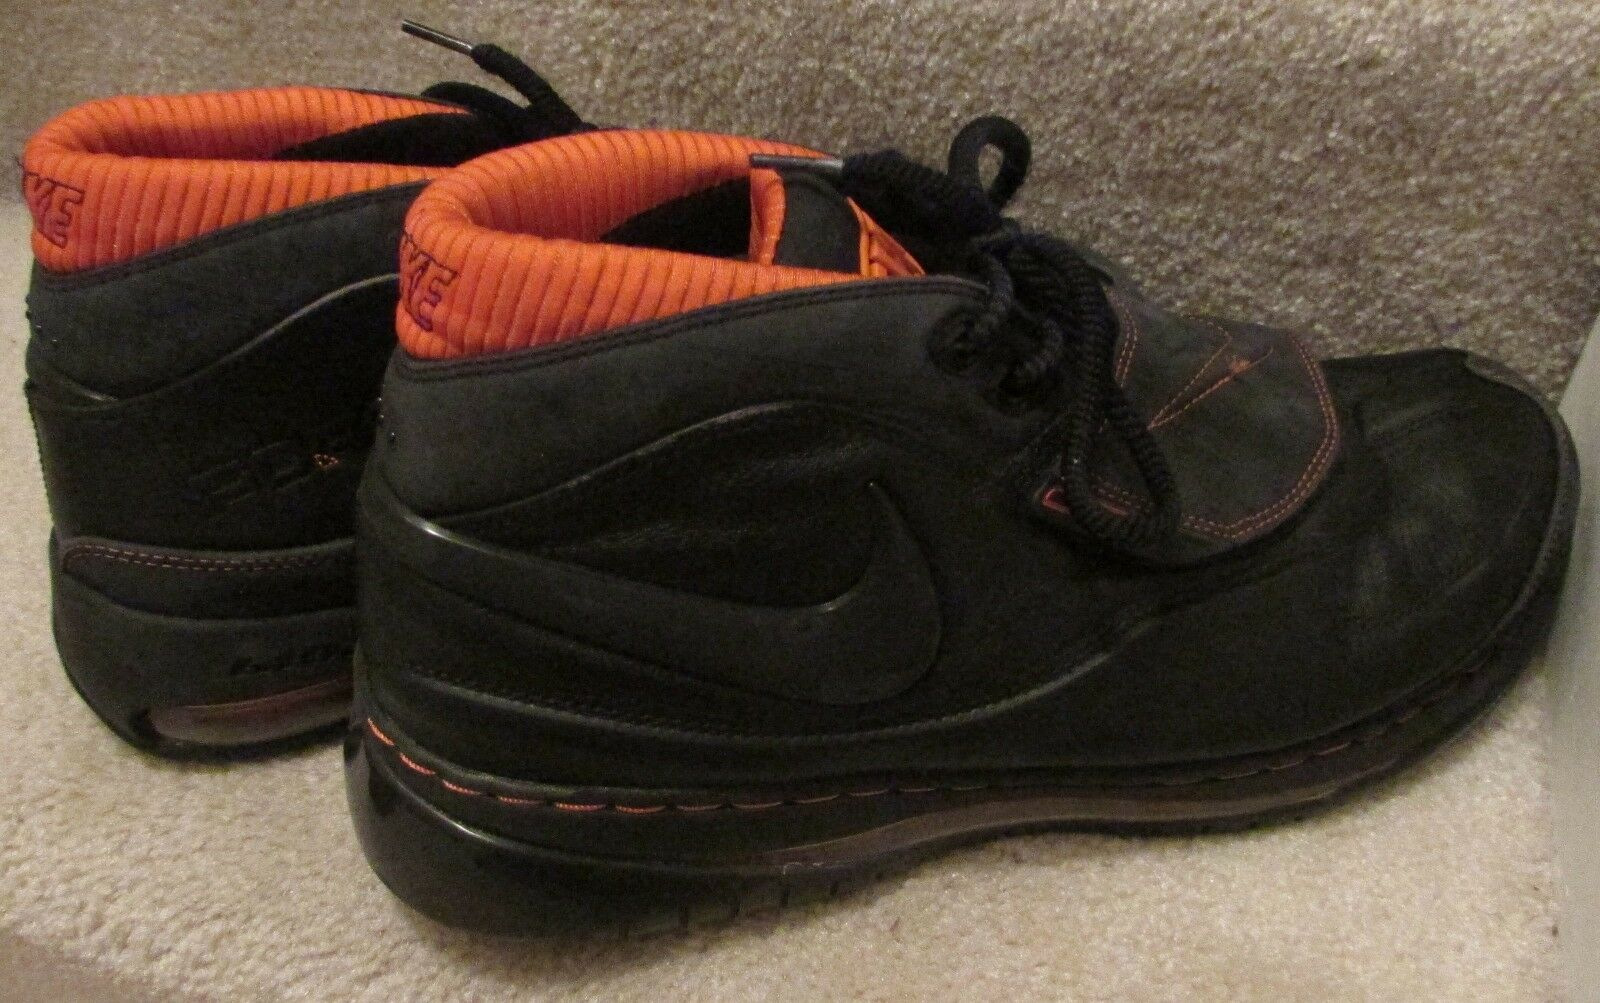 Nike Air Max Force STAT Black Basketball Shoes Comfortable